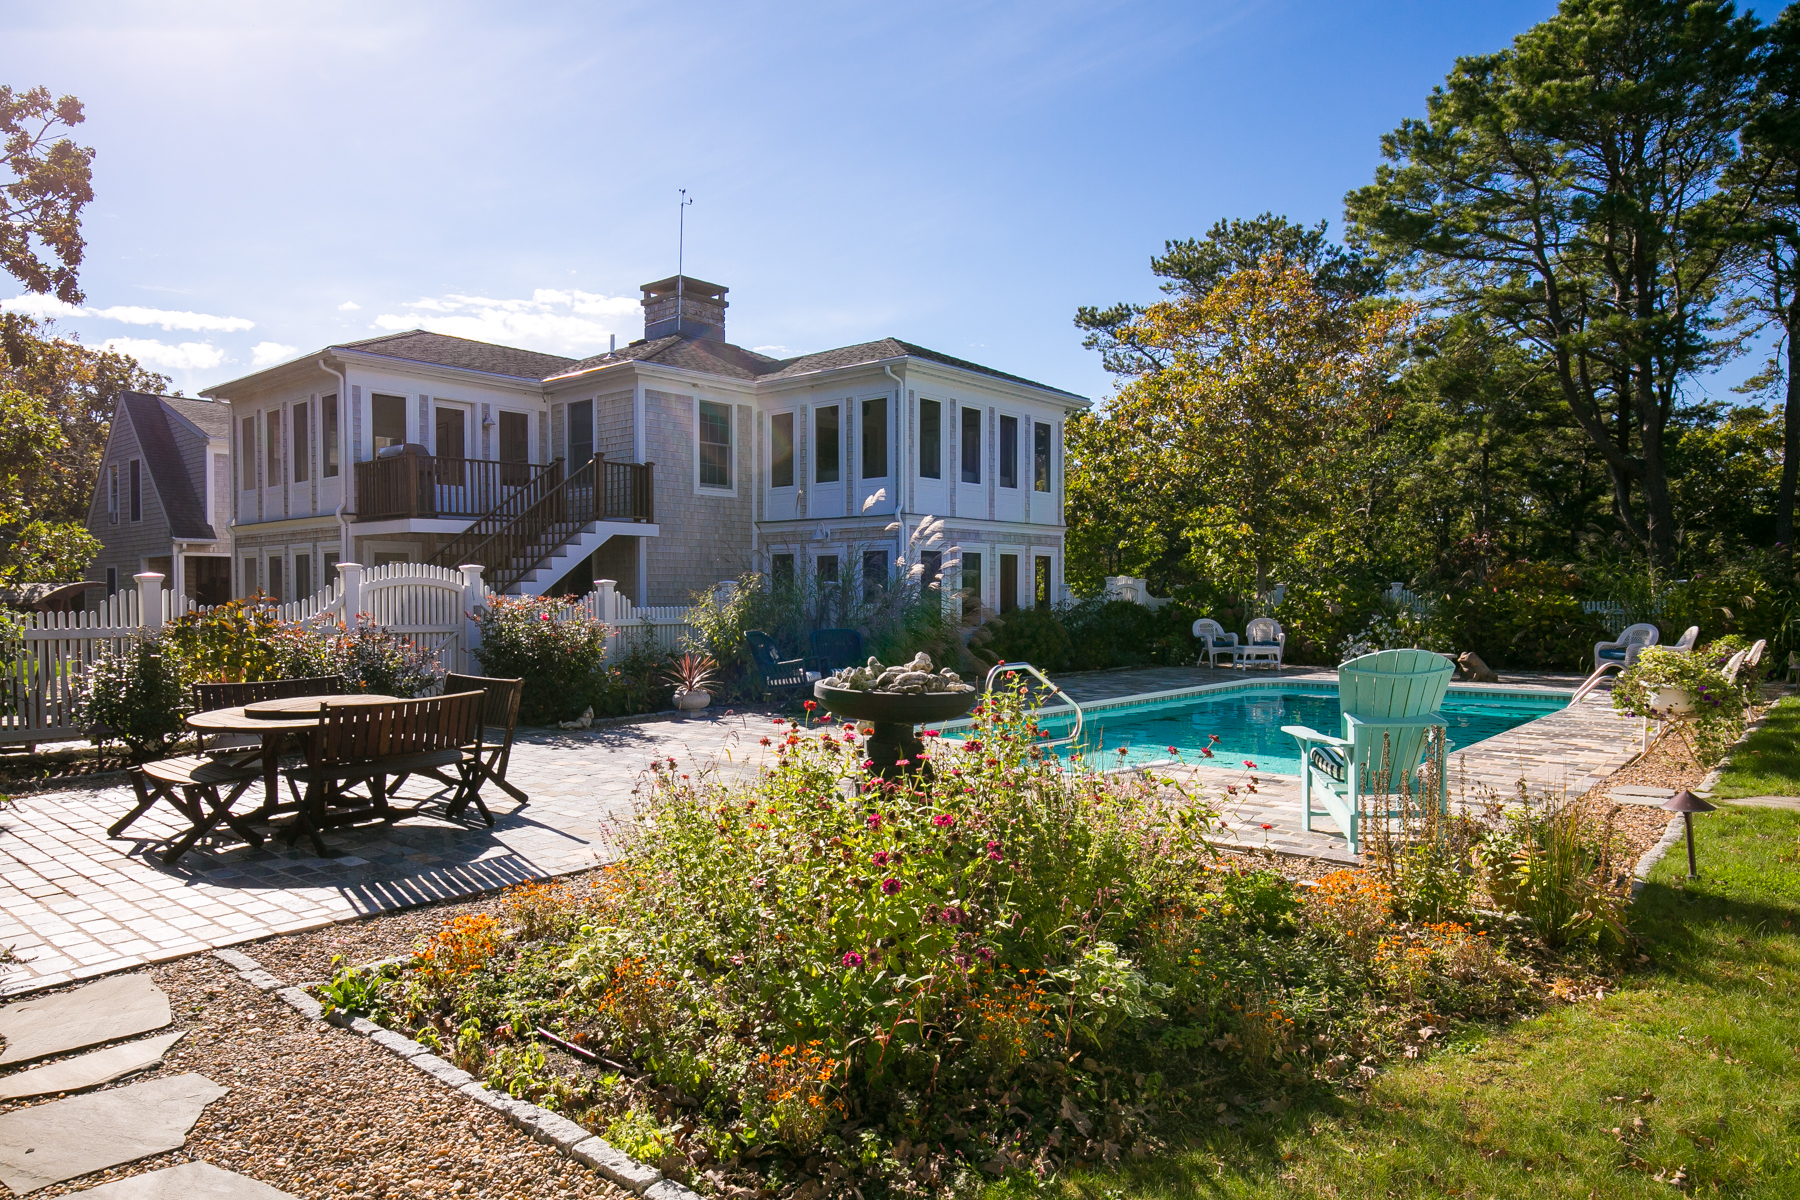 Villa per Vendita alle ore Custom Chappy Home with Pool 7 Chapel Ave Edgartown, Massachusetts, 02539 Stati Uniti